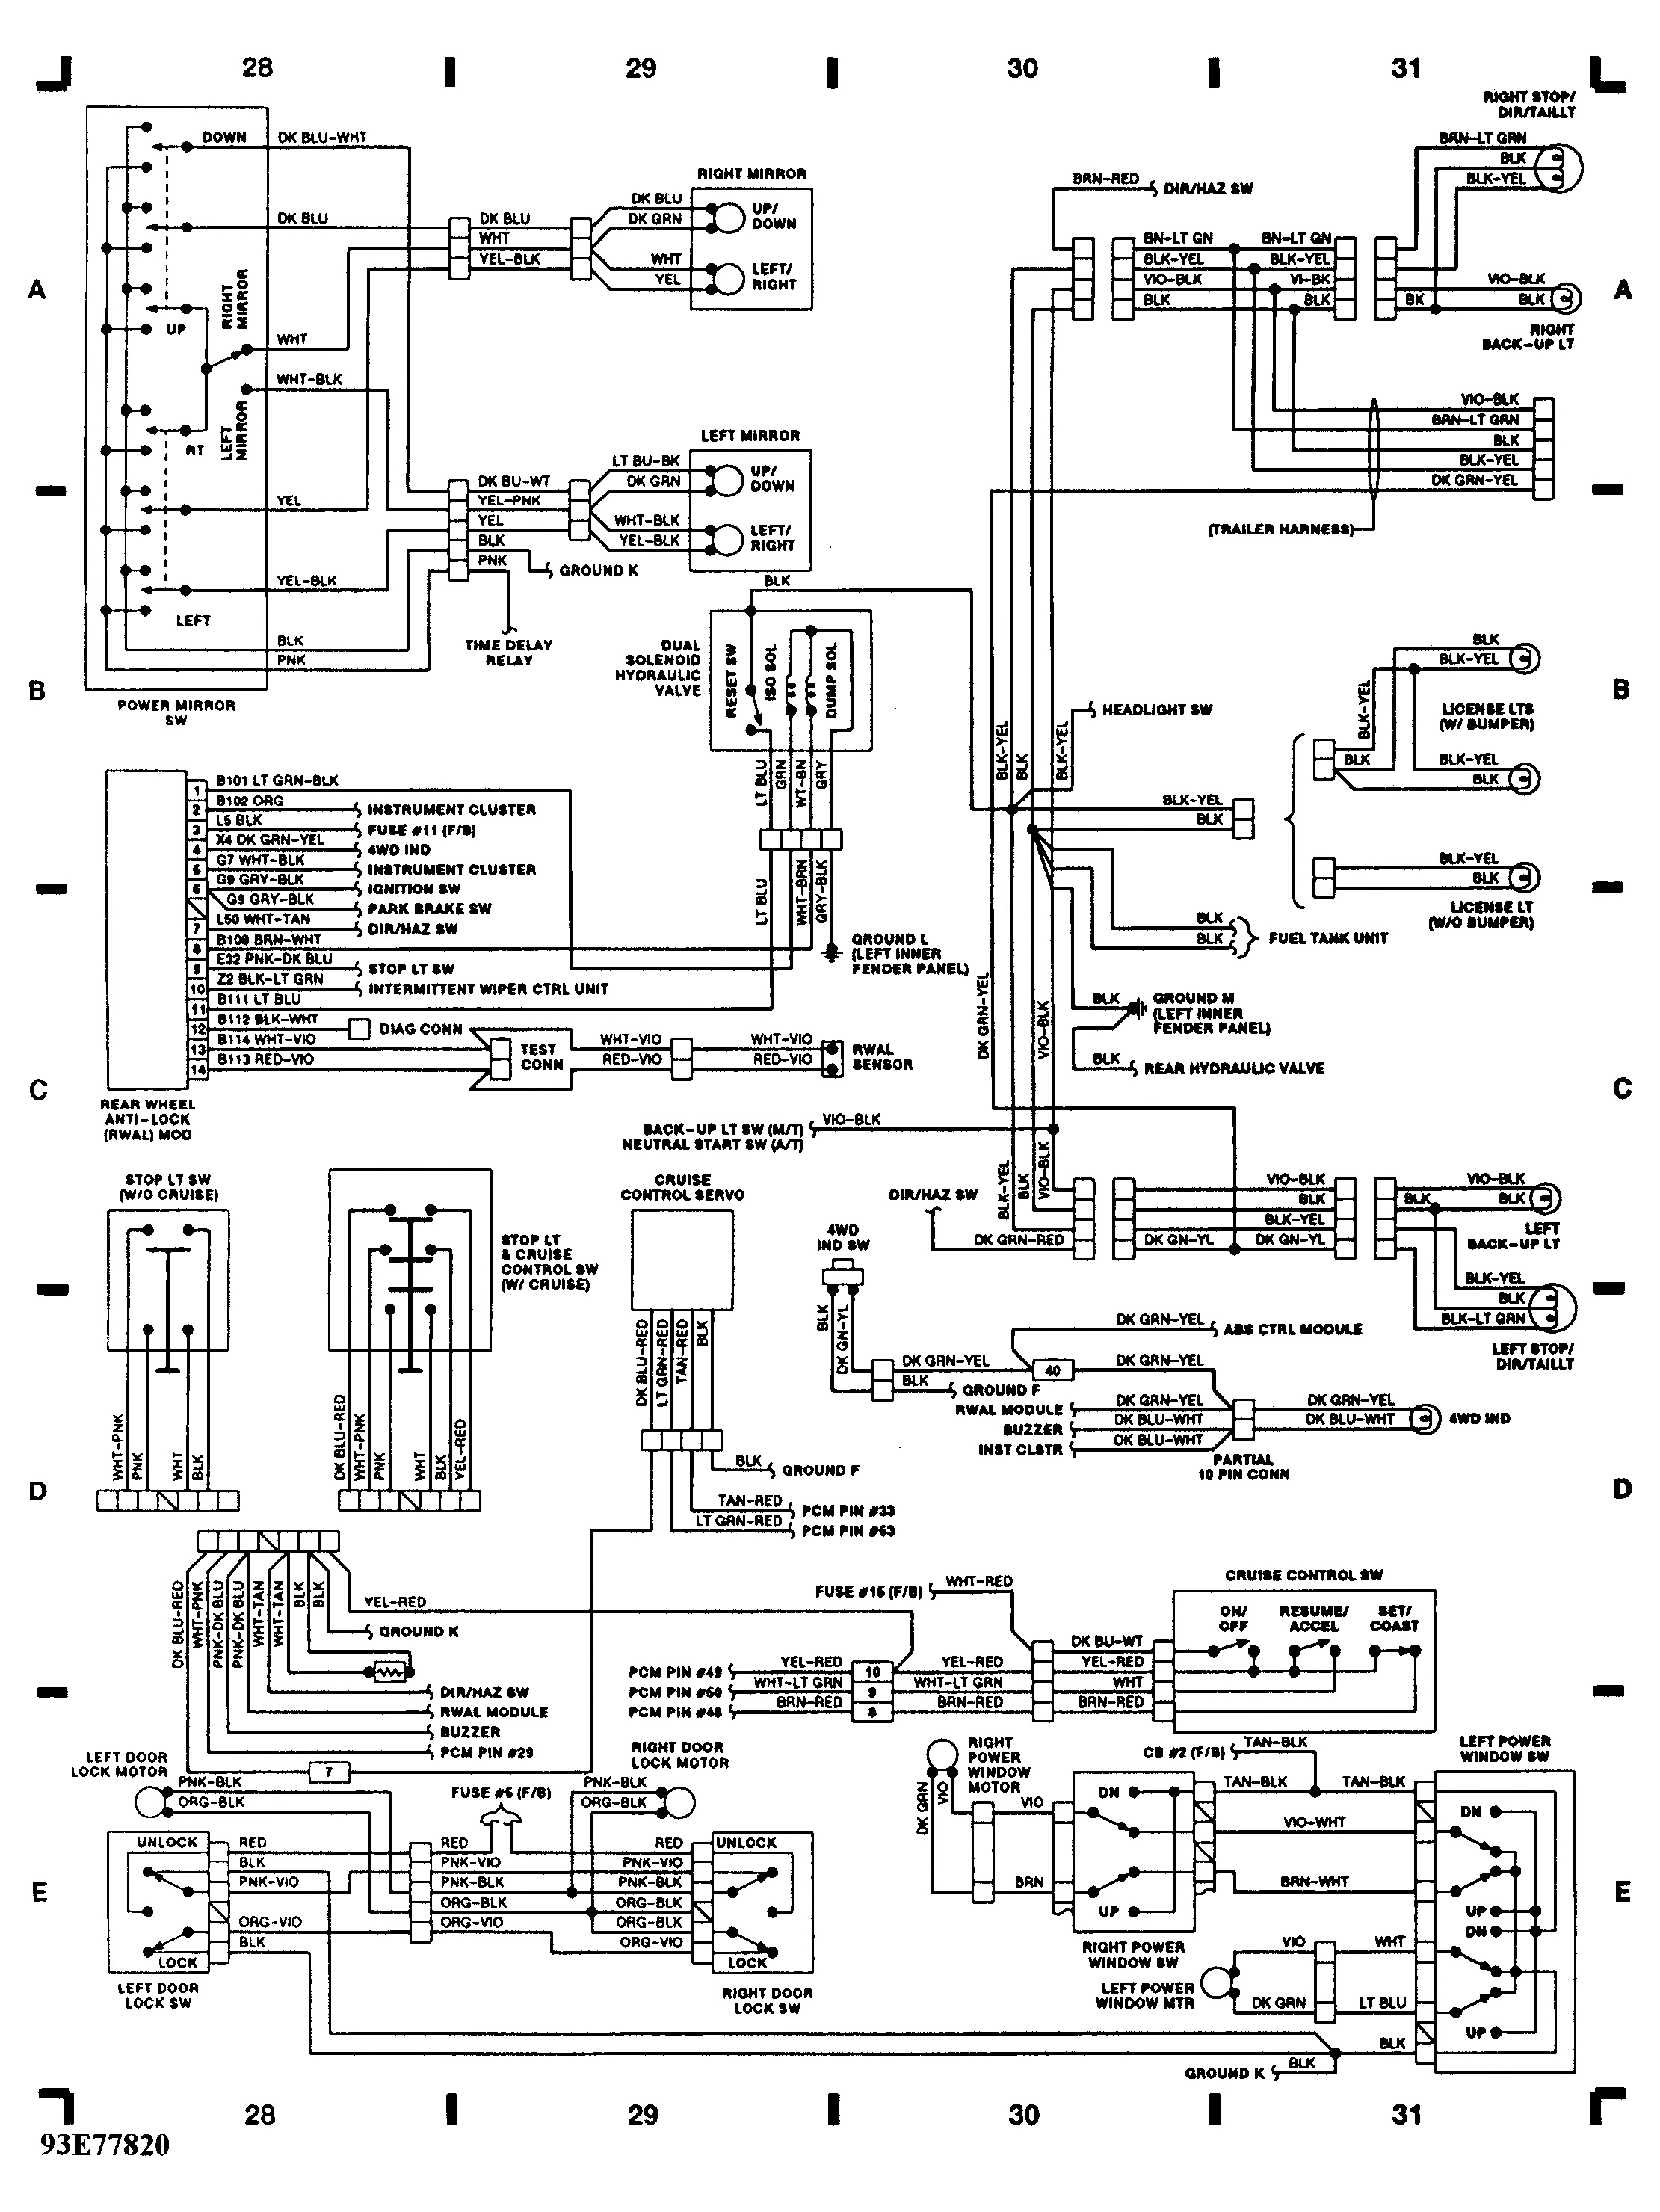 🏆 [DIAGRAM in Pictures Database] 1994 Dodge Dakota Tail Light Wiring  Diagram Just Download or Read Wiring Diagram - DIAGRAM-X-DAN-Y.ONYXUM.COMOnyxum.com